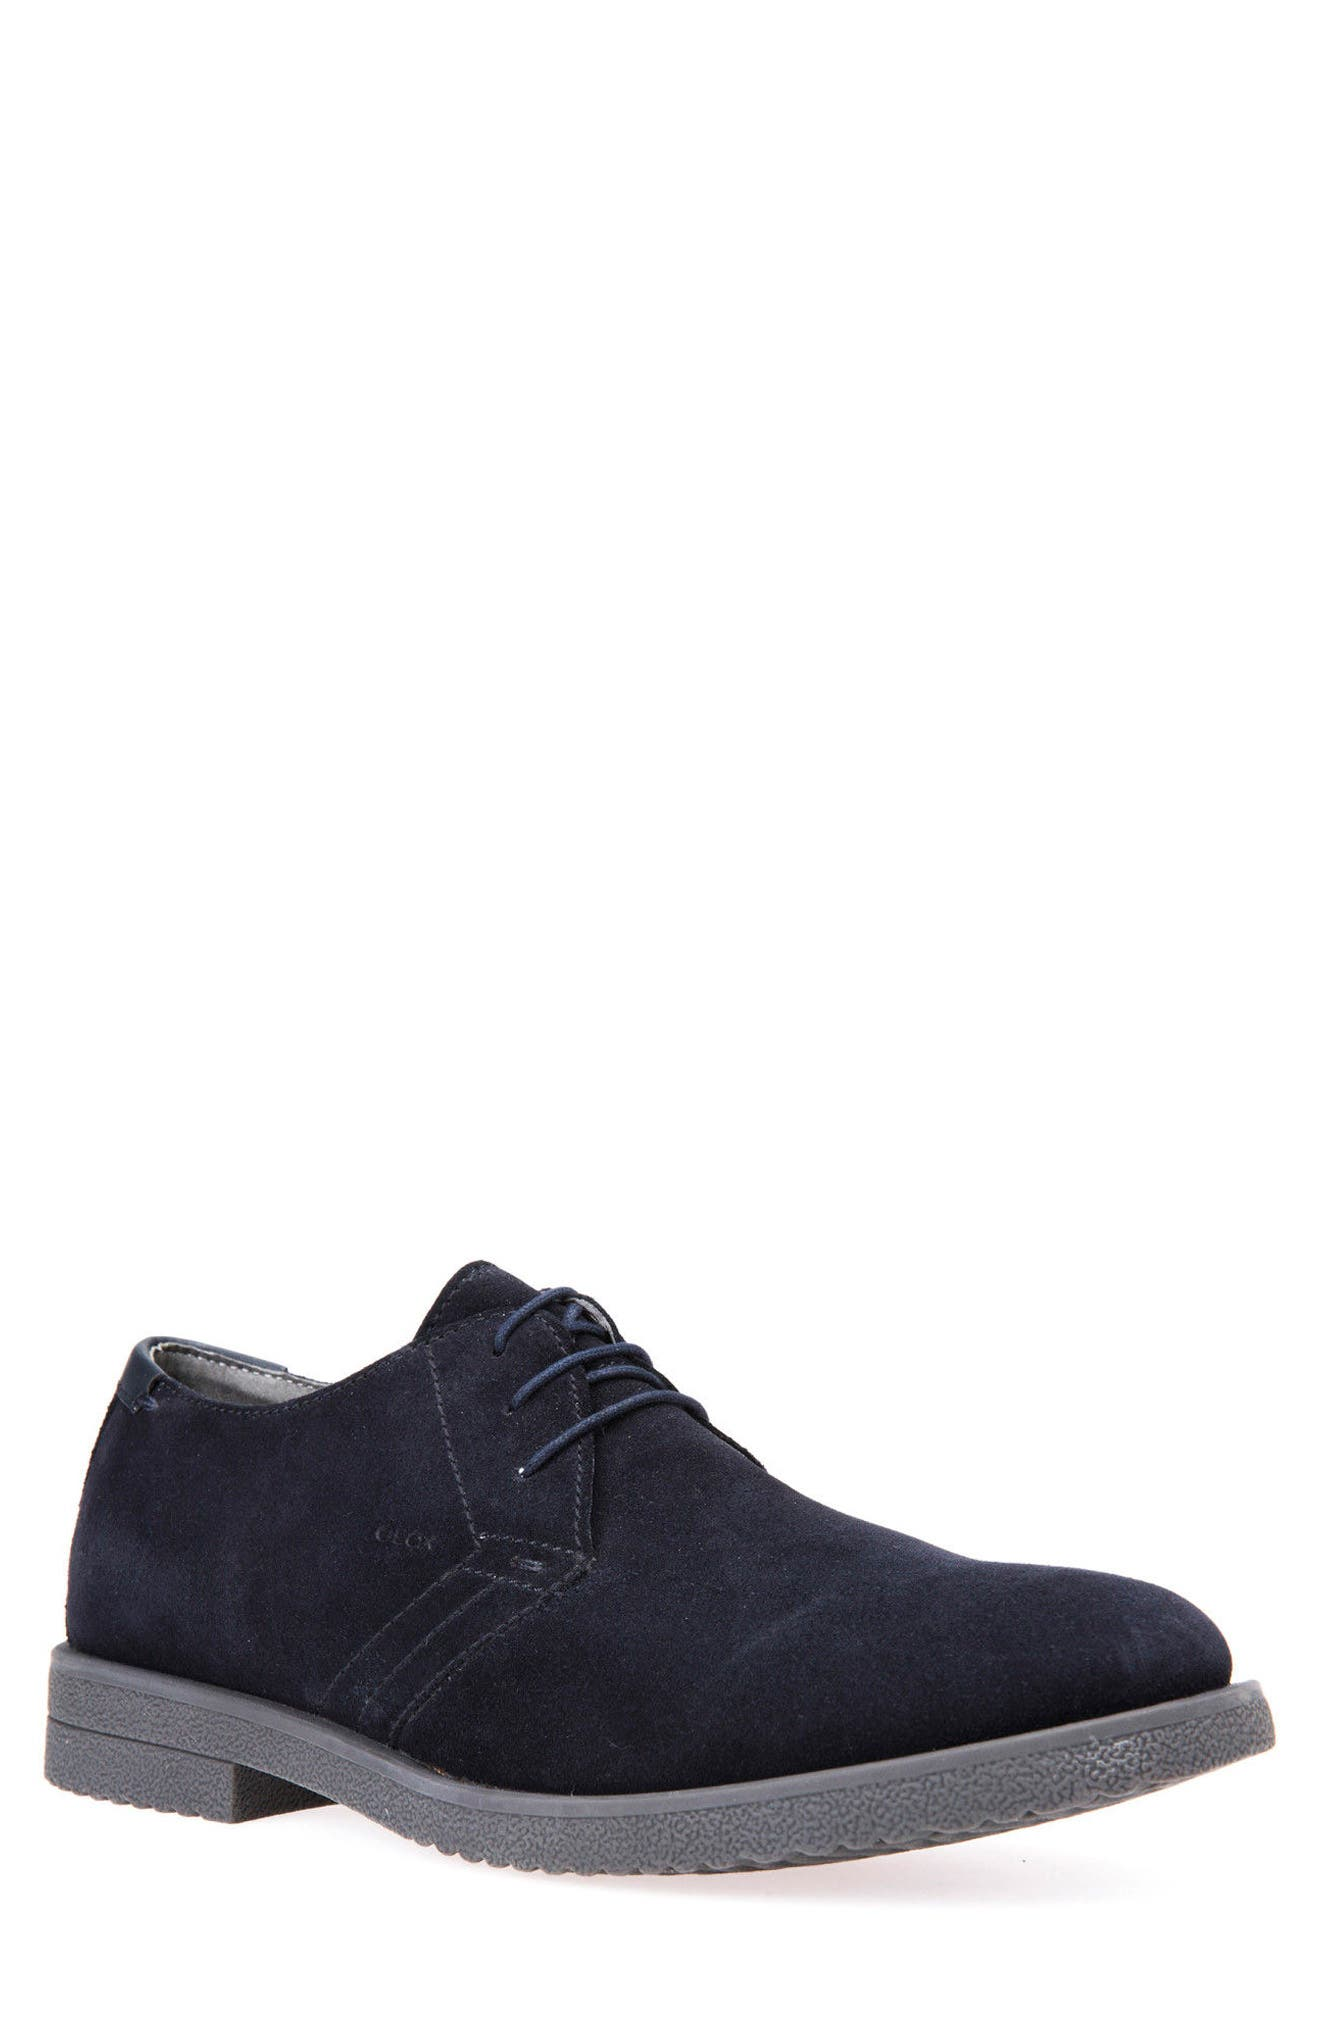 Alternate Image 1 Selected - Geox Brandled Buck Shoe (Men)